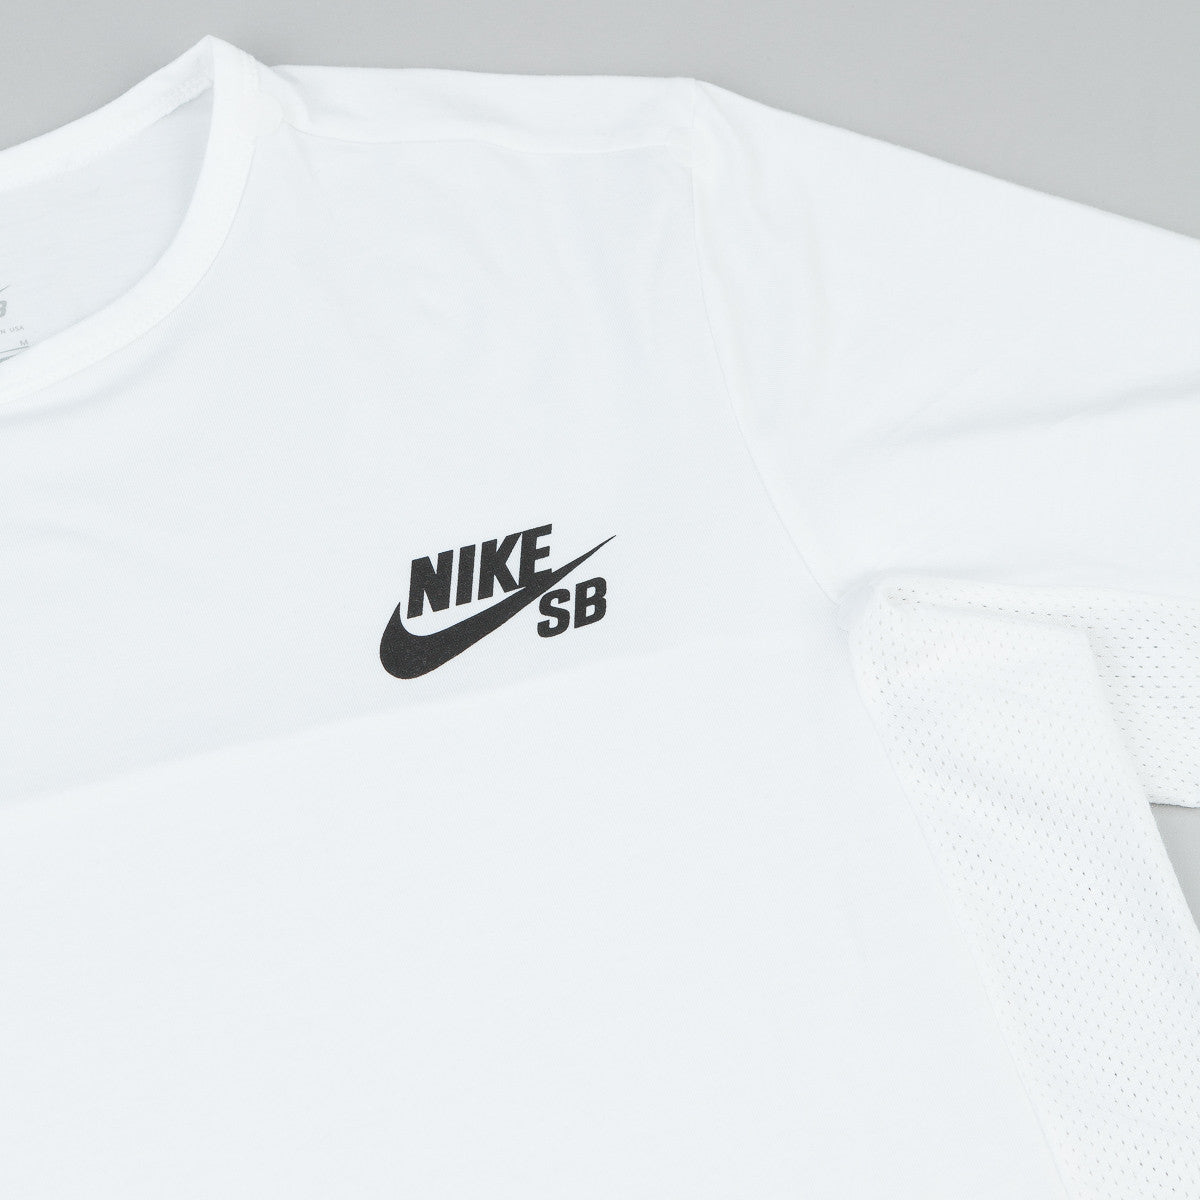 Nike SB Dri-Fit Skyline Cool T-Shirt - White / Black